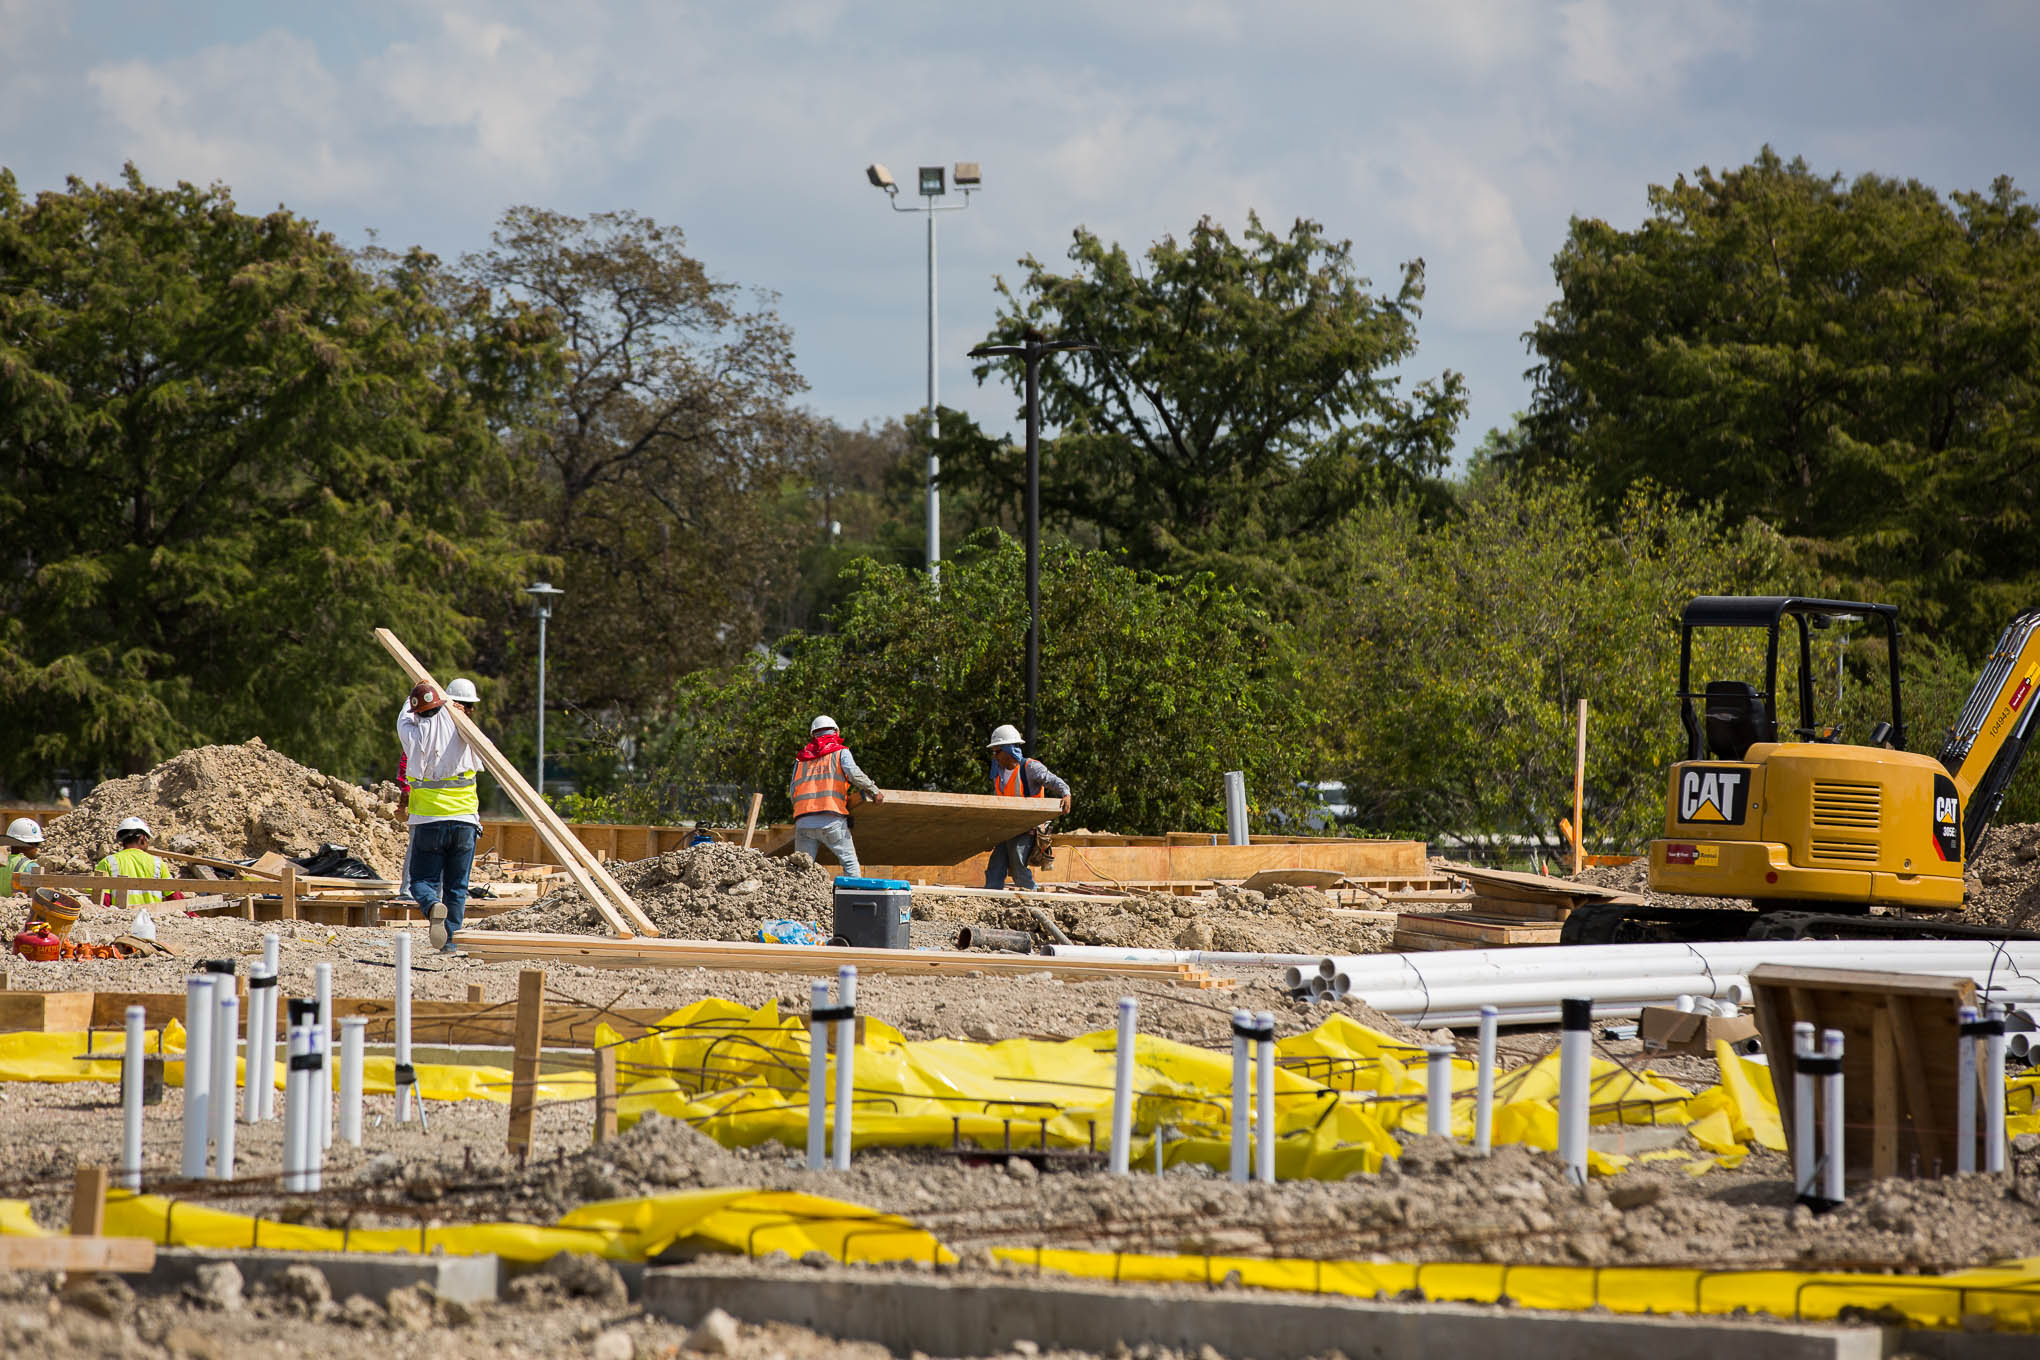 Construct workers prepare the foundation for what will be a new 234-bed Residence Hall at Our Lady of the Lake University.